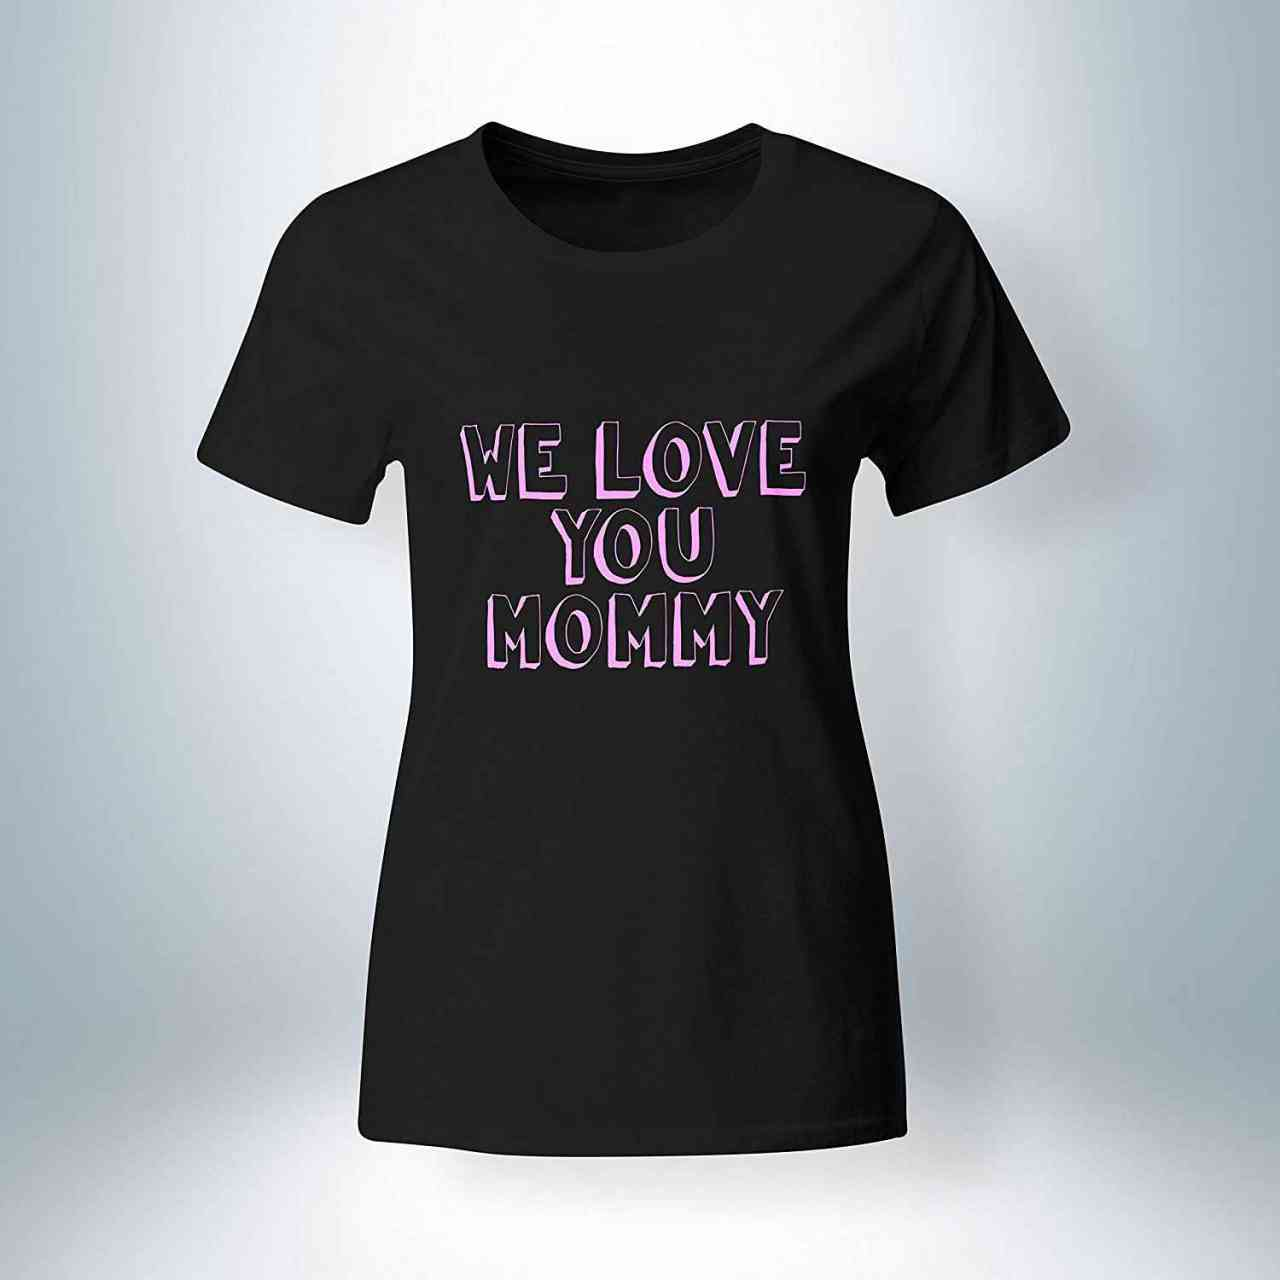 ❤ We Love You Mommy ❤ - Muttertag T-Shirt | Mama - Mother - Mutter Shirt